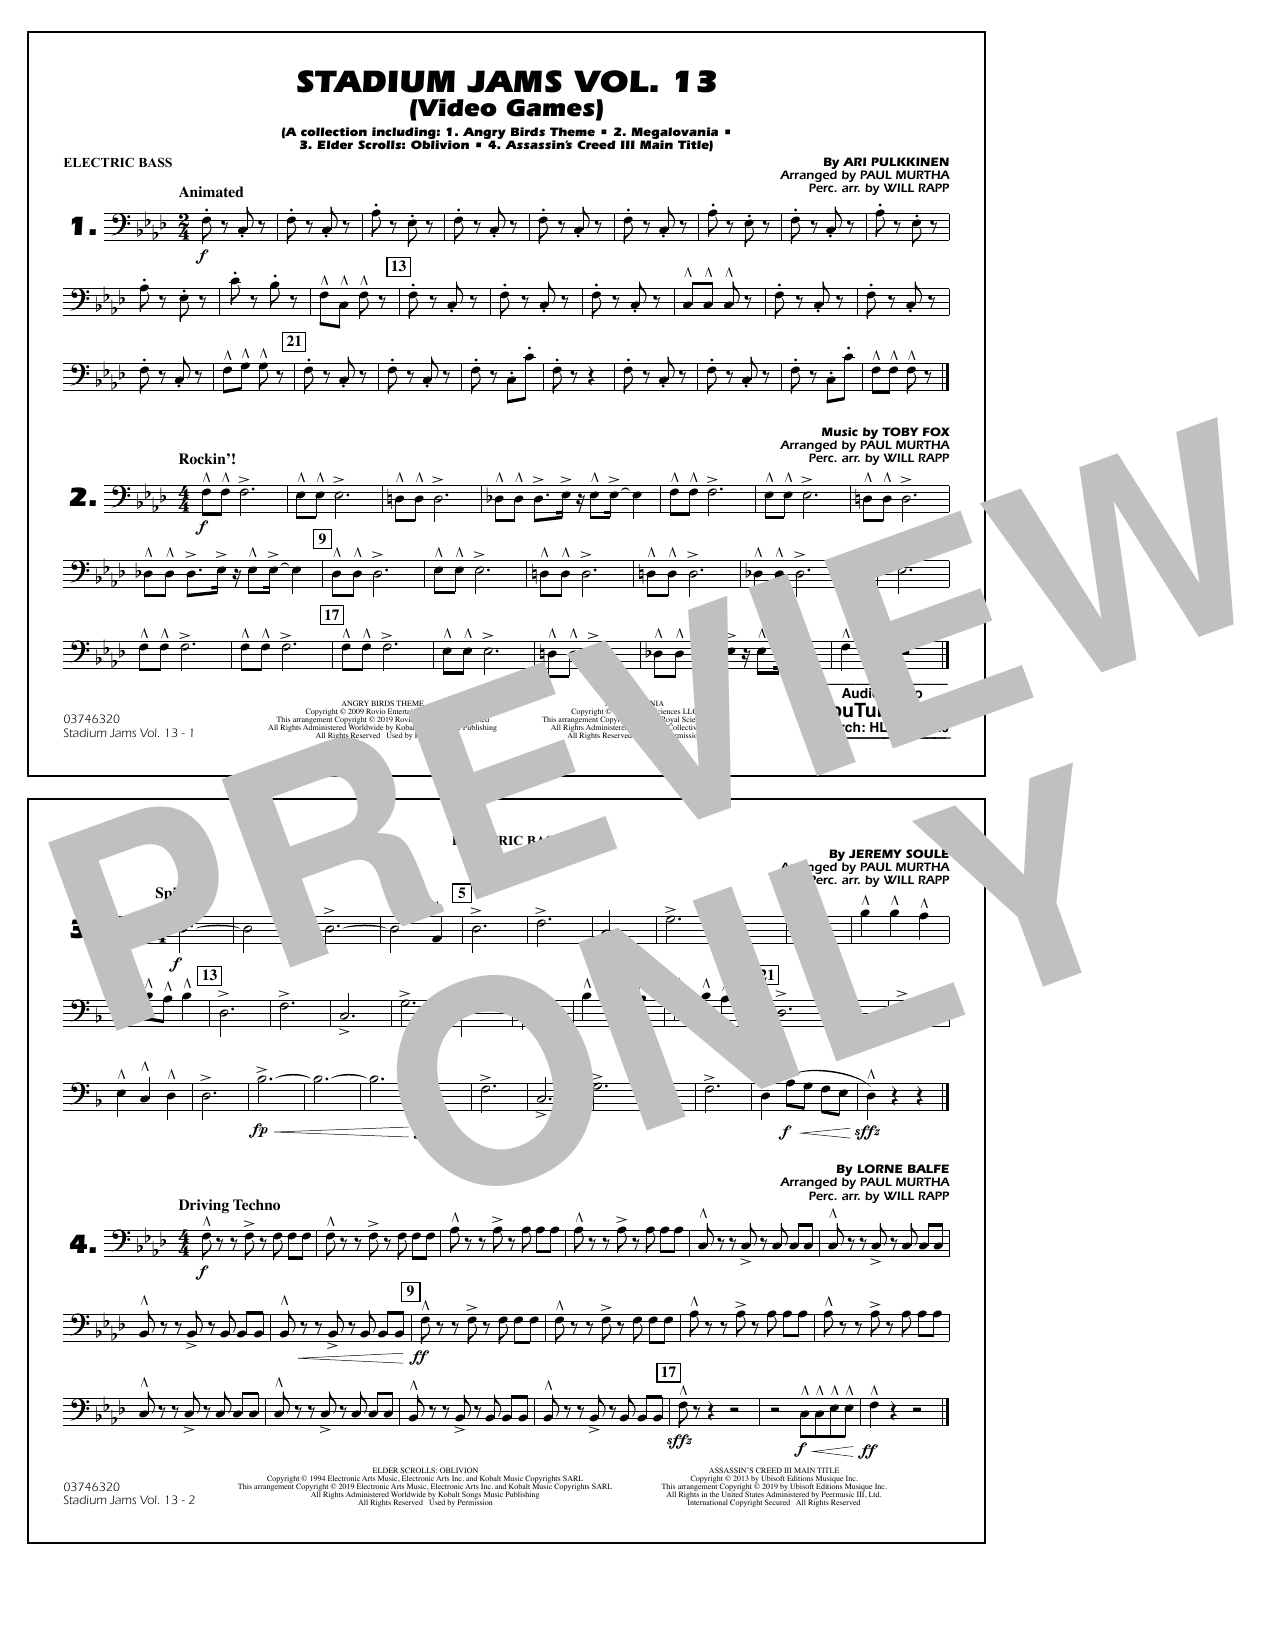 Paul Murtha & Will Rapp 'Stadium Jams Volume 13 (Video Games) - Electric  Bass' Sheet Music Notes, Chords | Download Printable Marching Band - SKU: